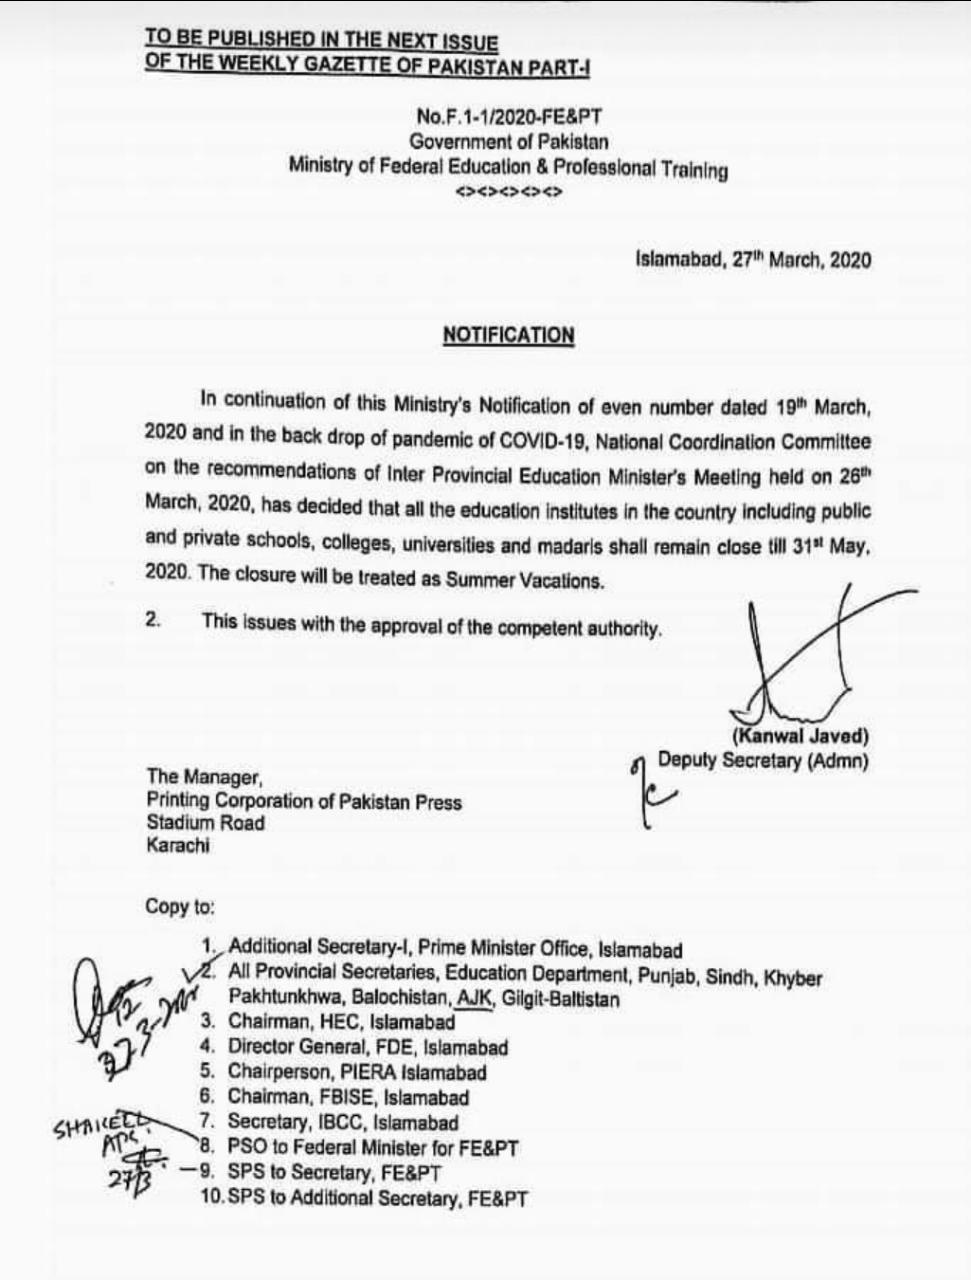 Notification of Holidays All Pakistan Educational Institutions